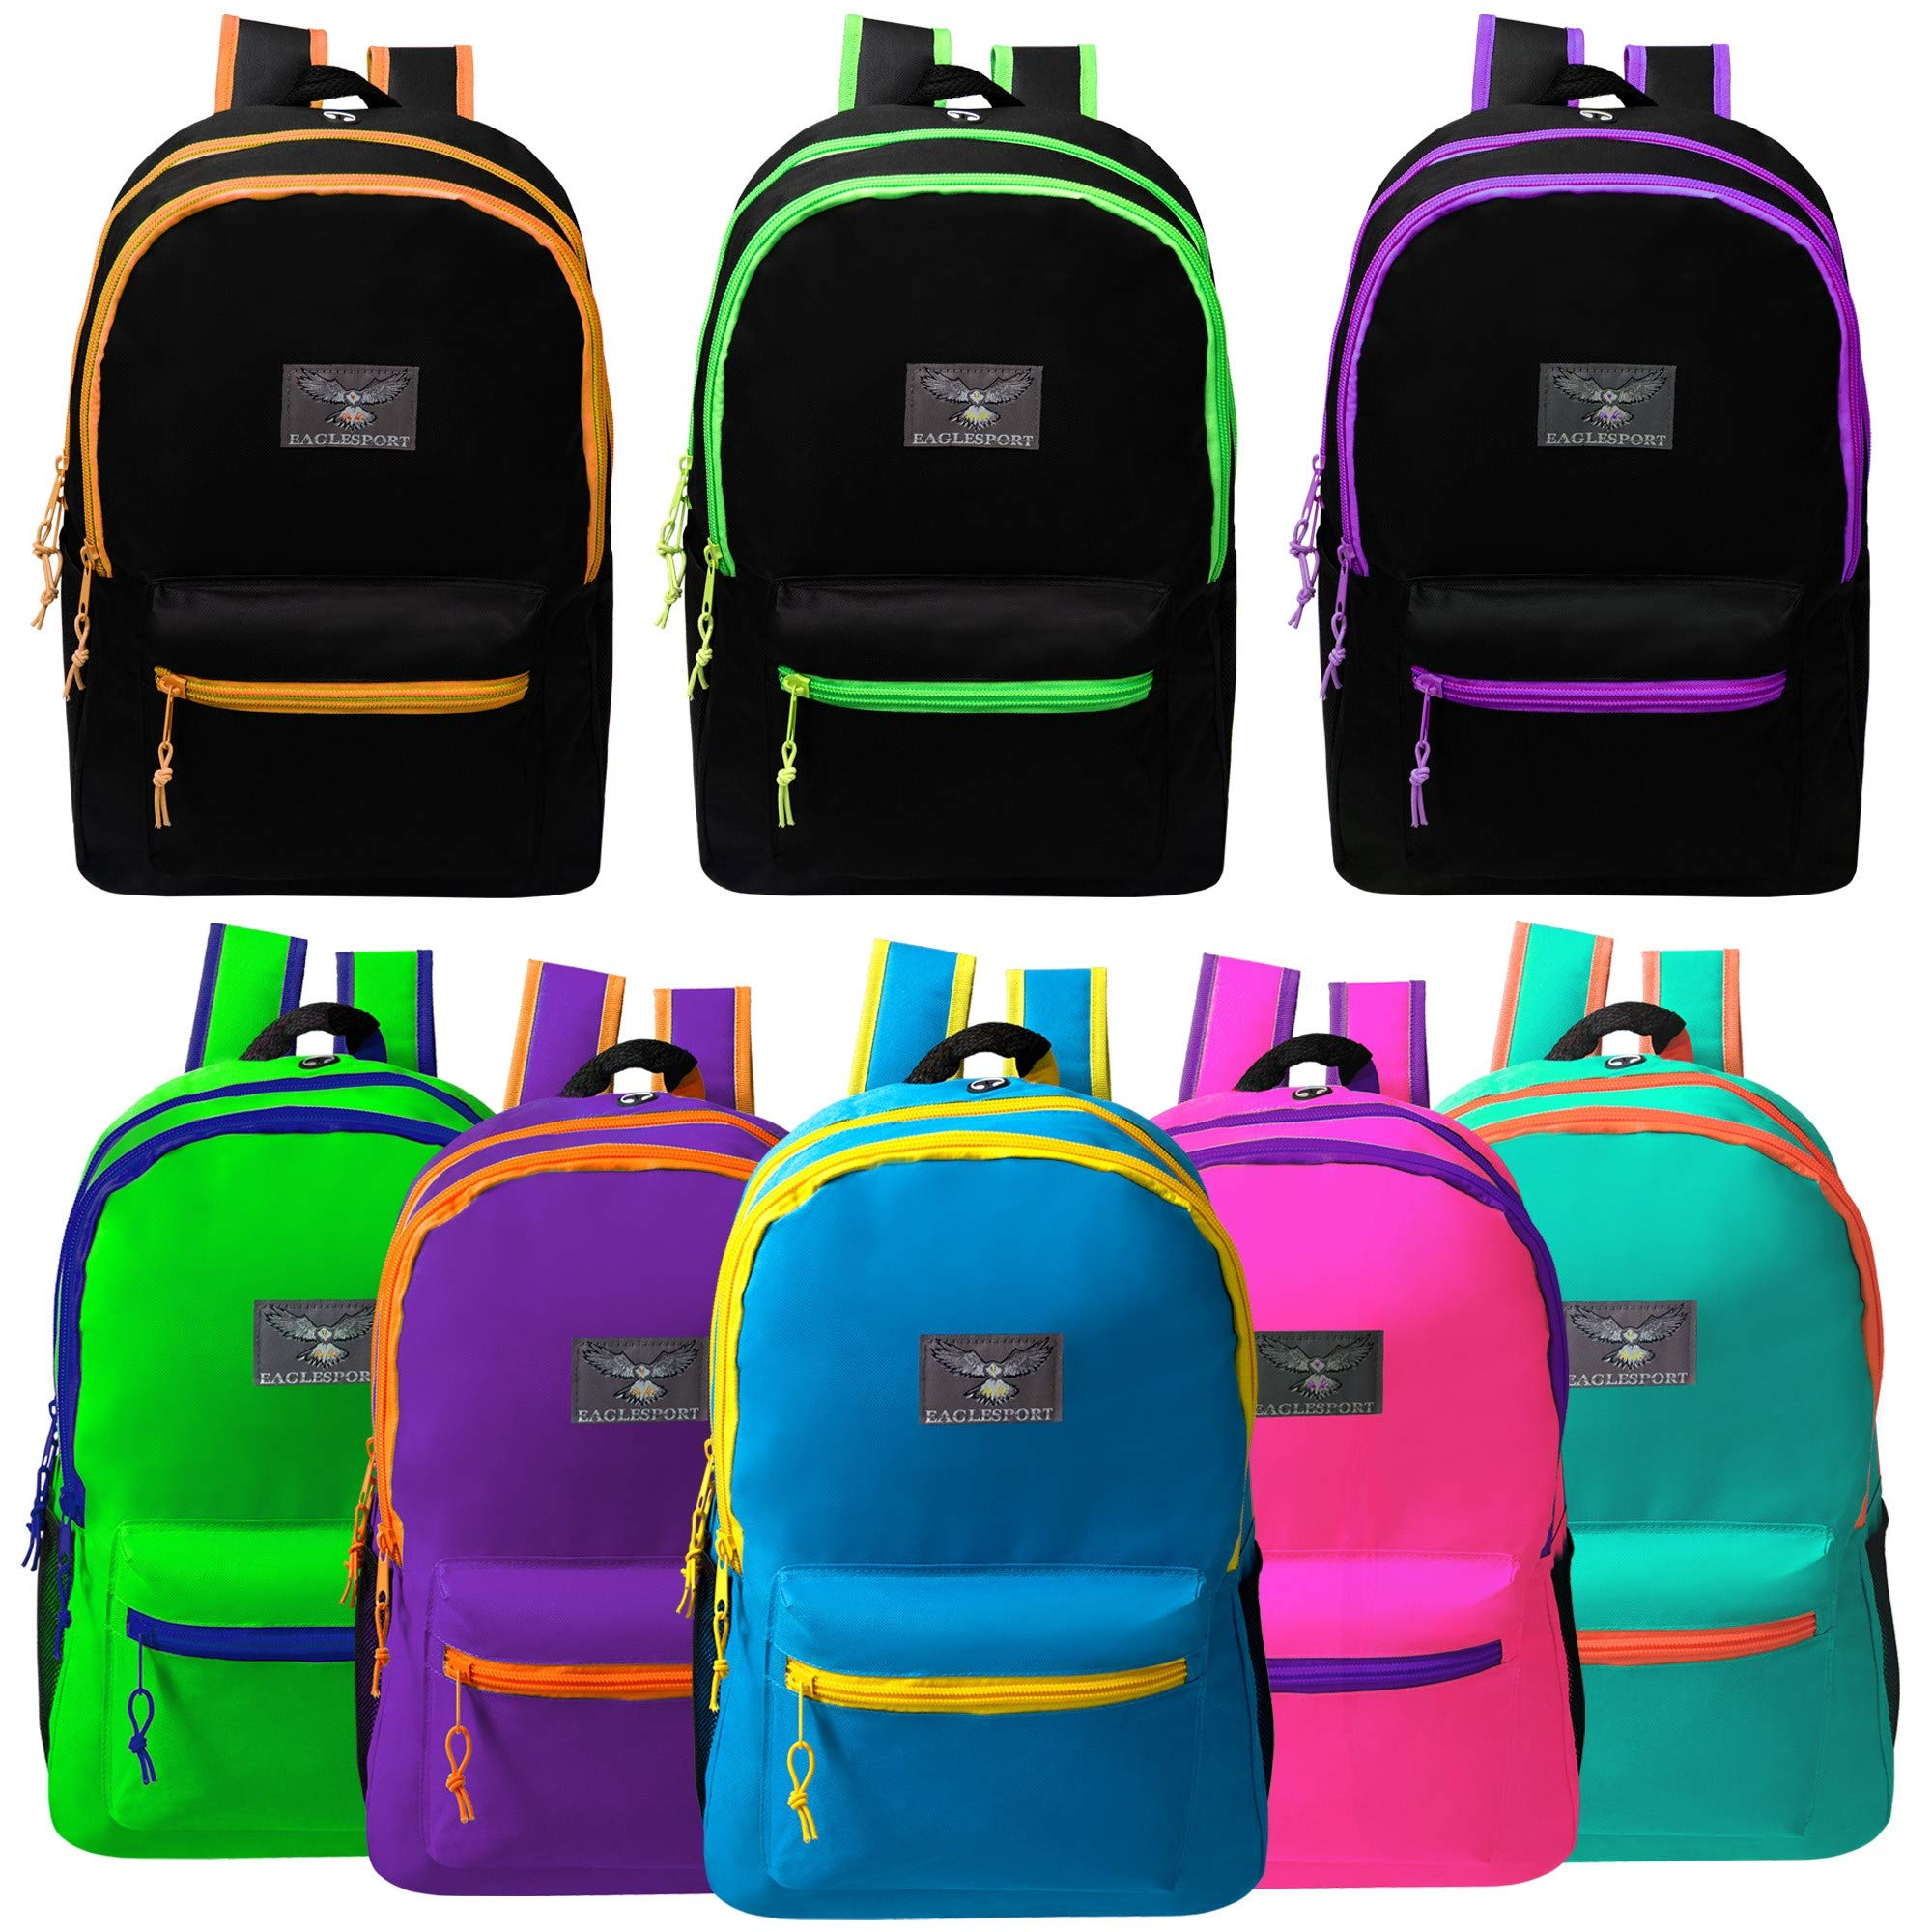 19'' Large Bulk Backpacks with Side Mesh Water Bottle Pockets in 8 Assorted Colors - Wholesale Case of 24 Bookbags by Arctic Star